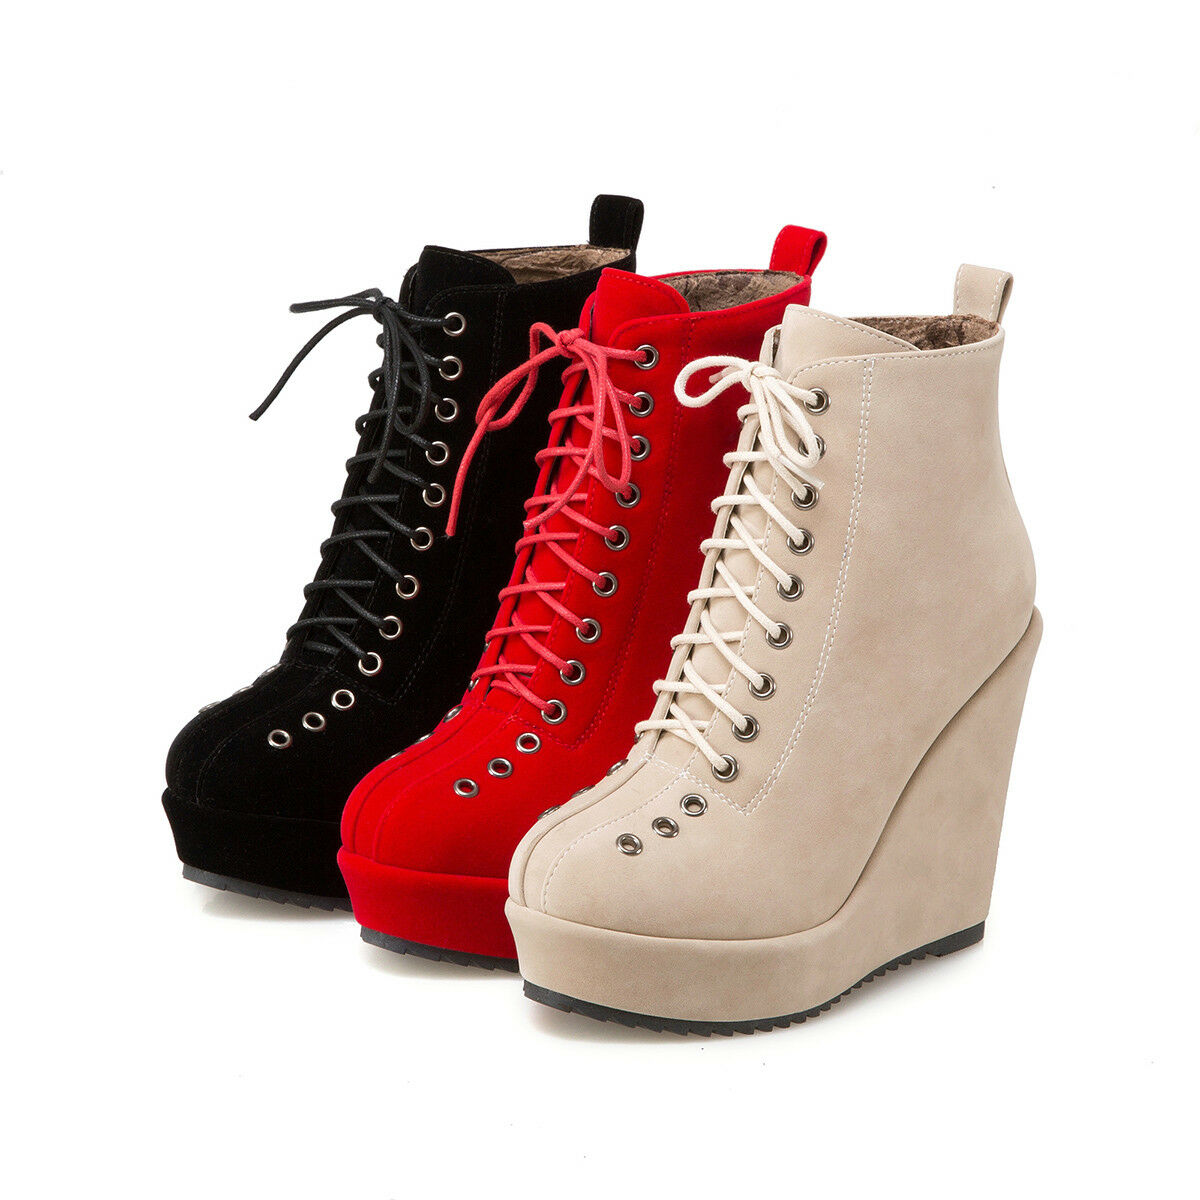 Lady's High Heel Wedge shoes Suede Fabric Round Toe Lace-Up Ankle Platform Boots